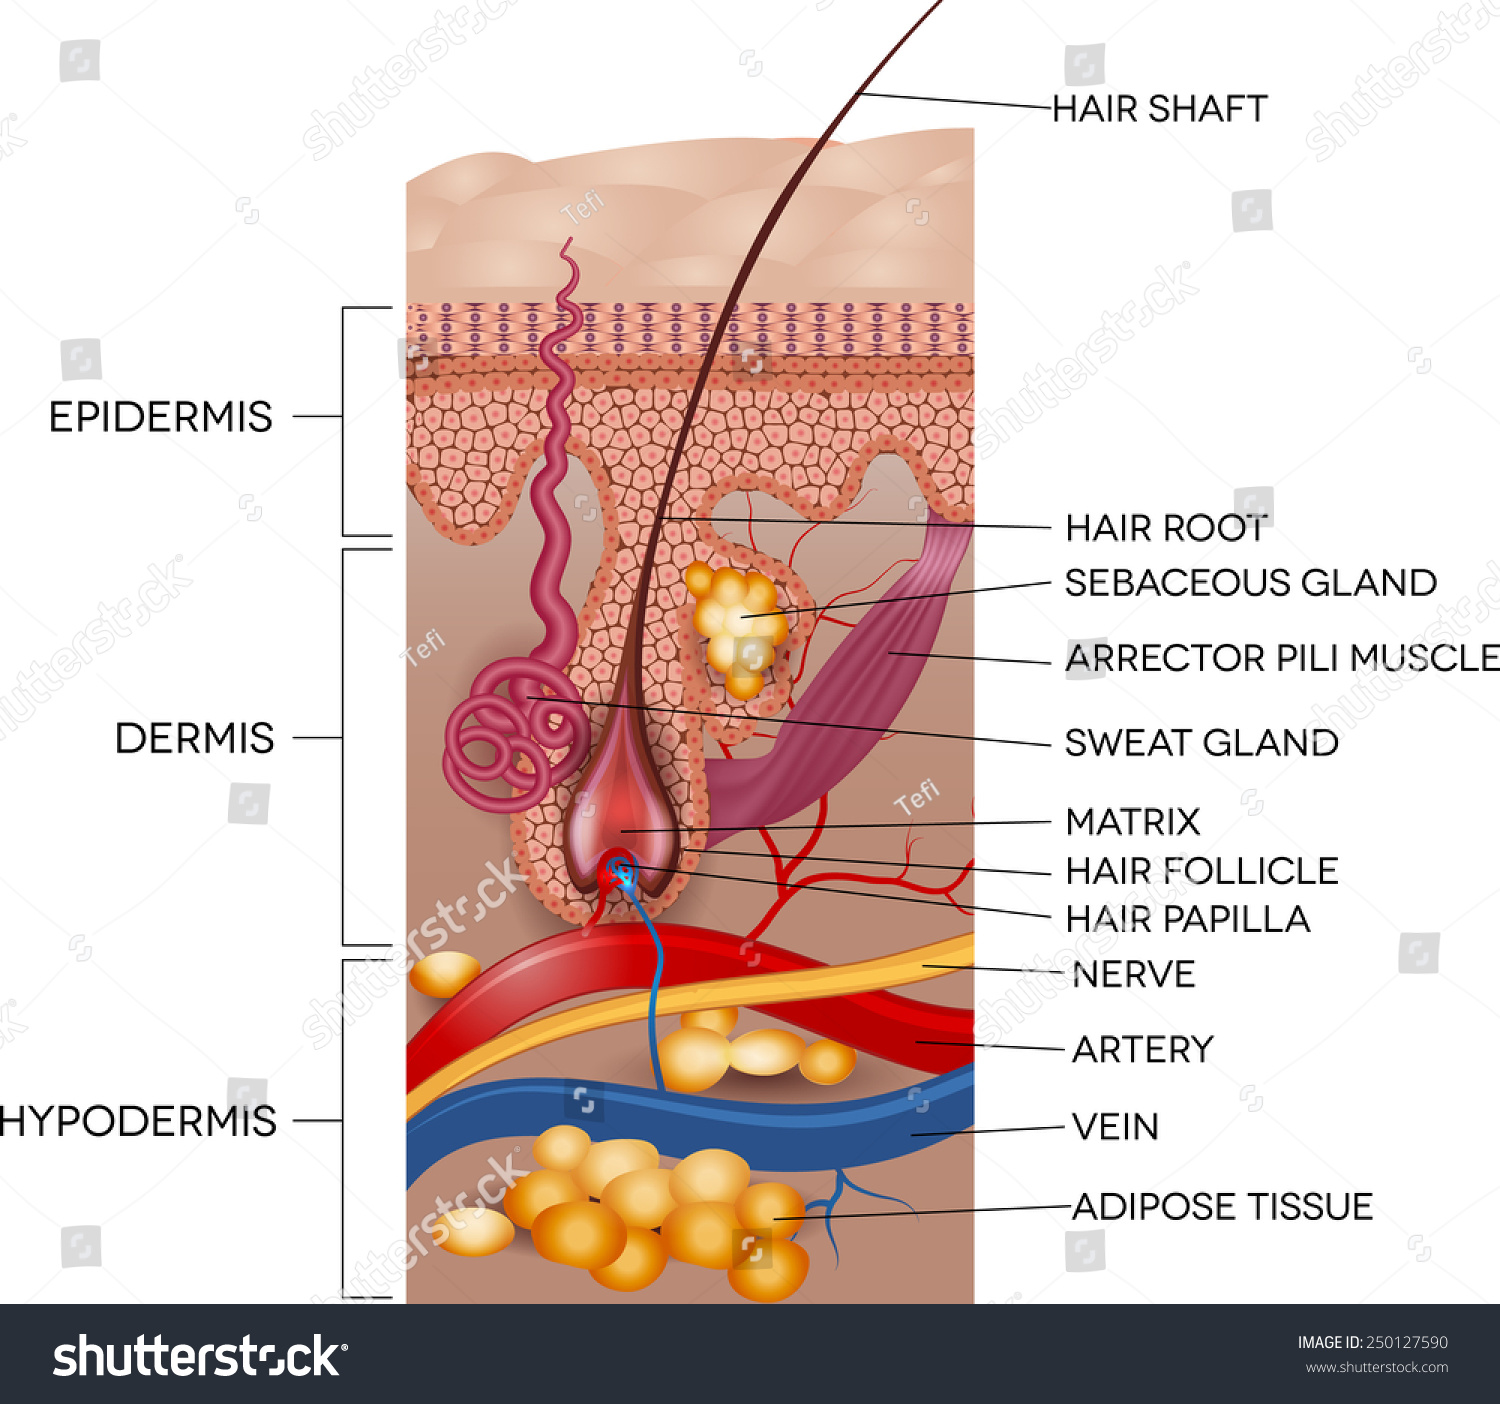 Labeled Skin Hair Anatomy Detailed Medical Stock Vector (2018 ...